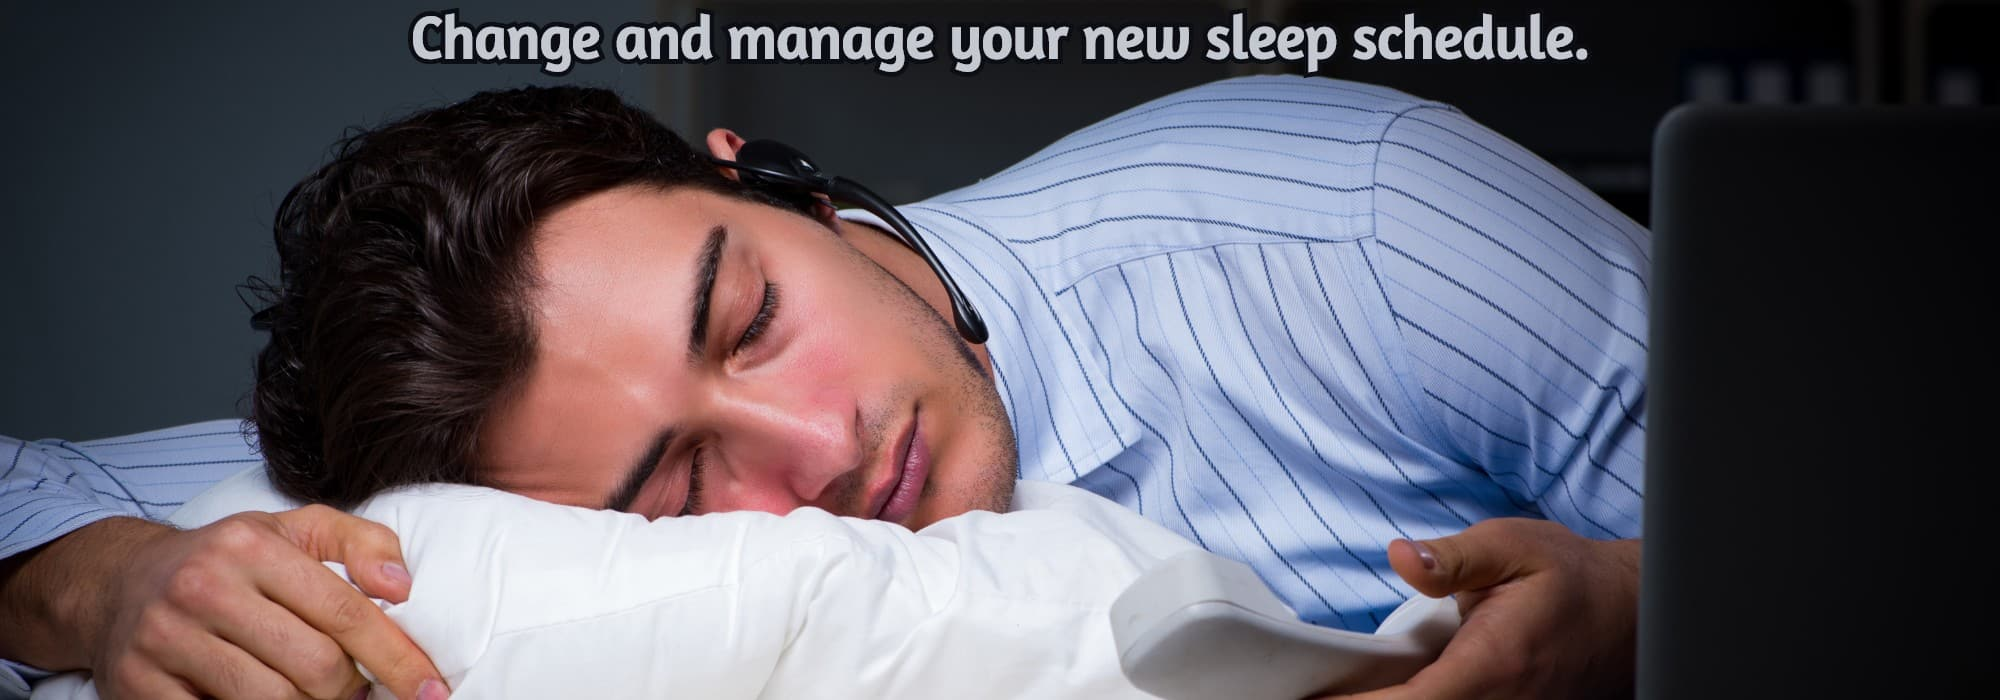 Change and manage your new sleep schedule. afinilexpress.com, how to stay awake